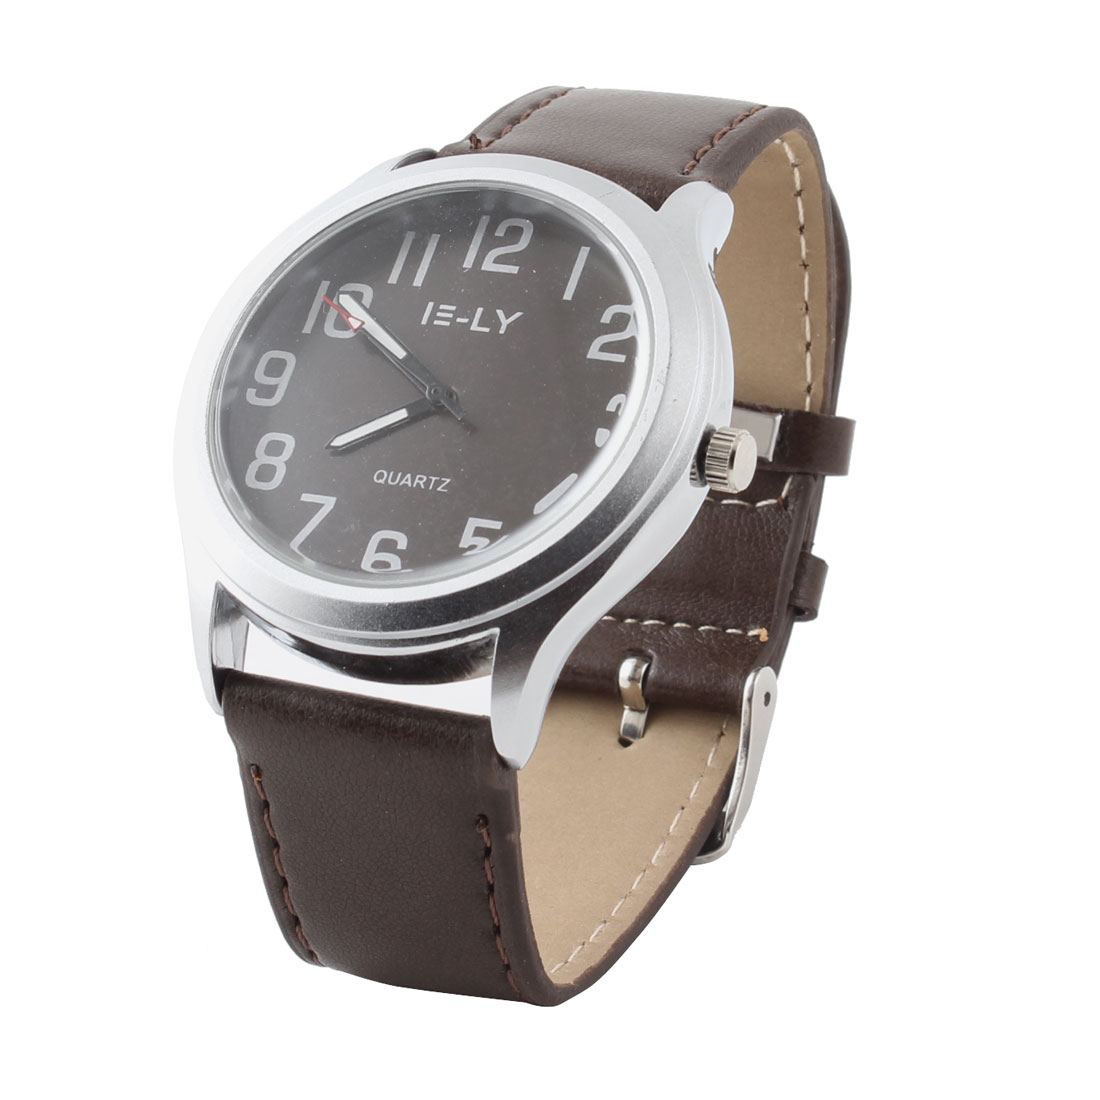 Man Retro Style Silver Tone Arabic Number Dial Quartz Wrist Watch Brown